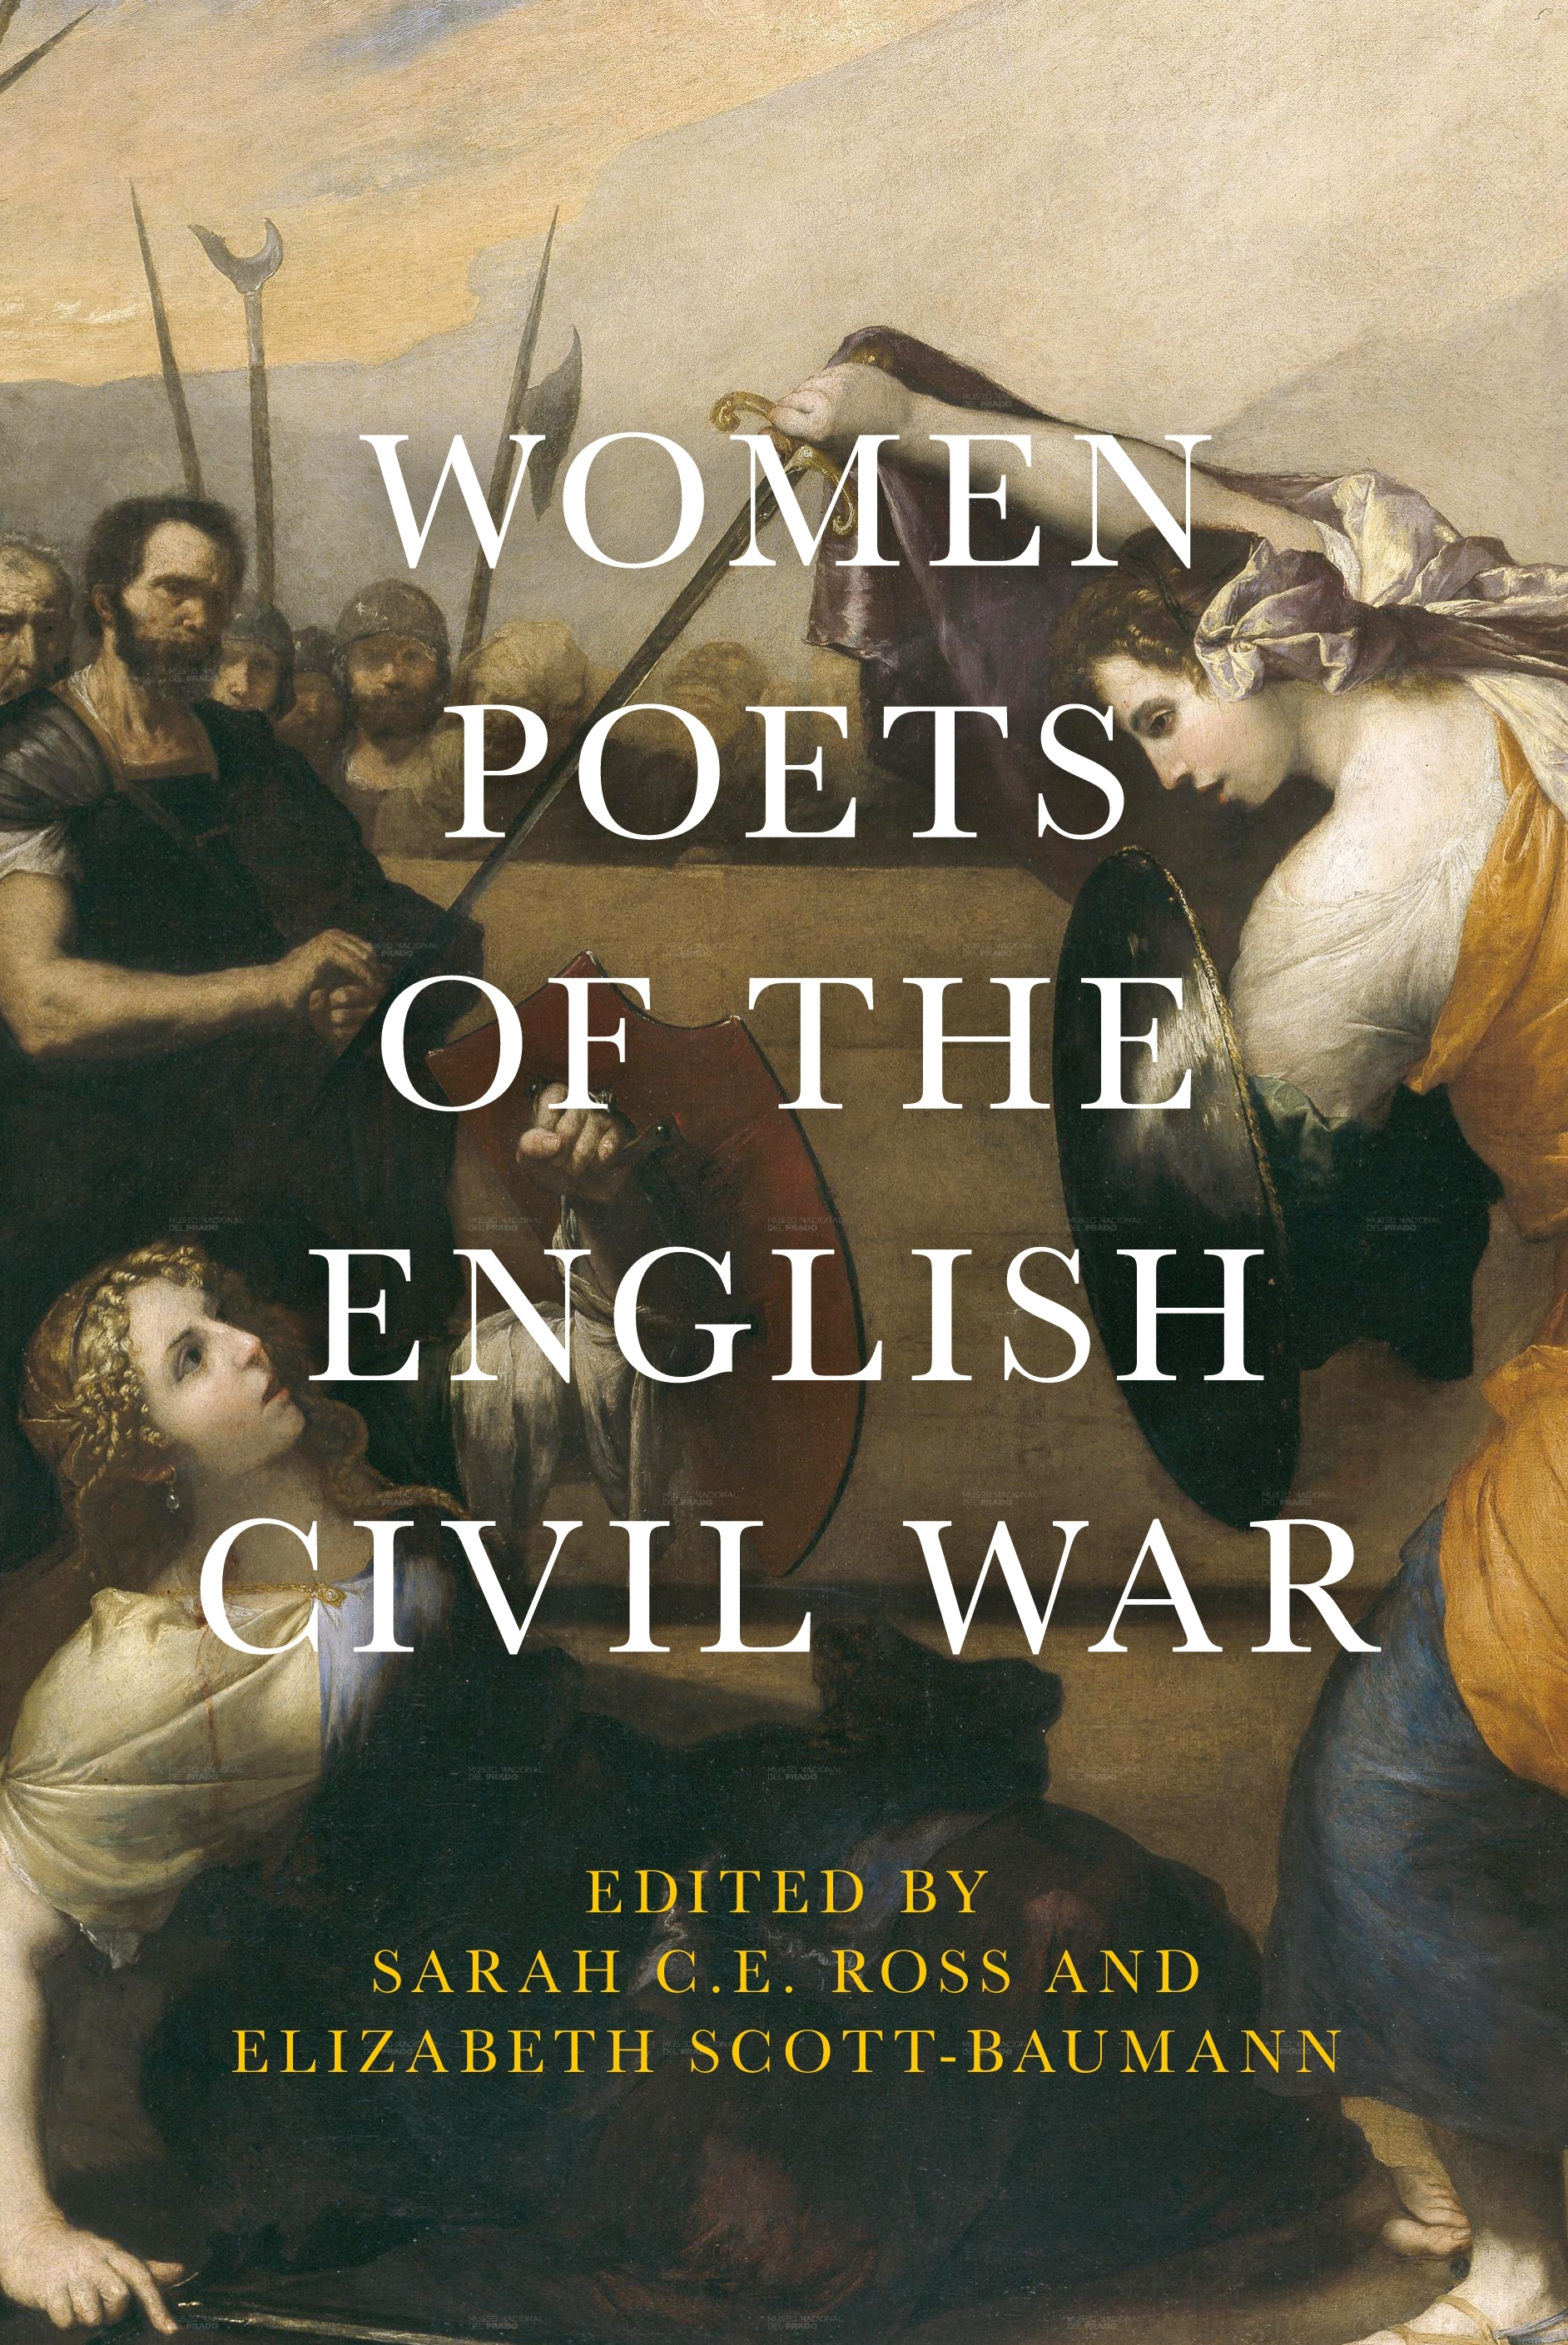 Women poets of the English Civil War- Q&A with Sarah C. E. Ross and Elizabeth Scott-Baumann